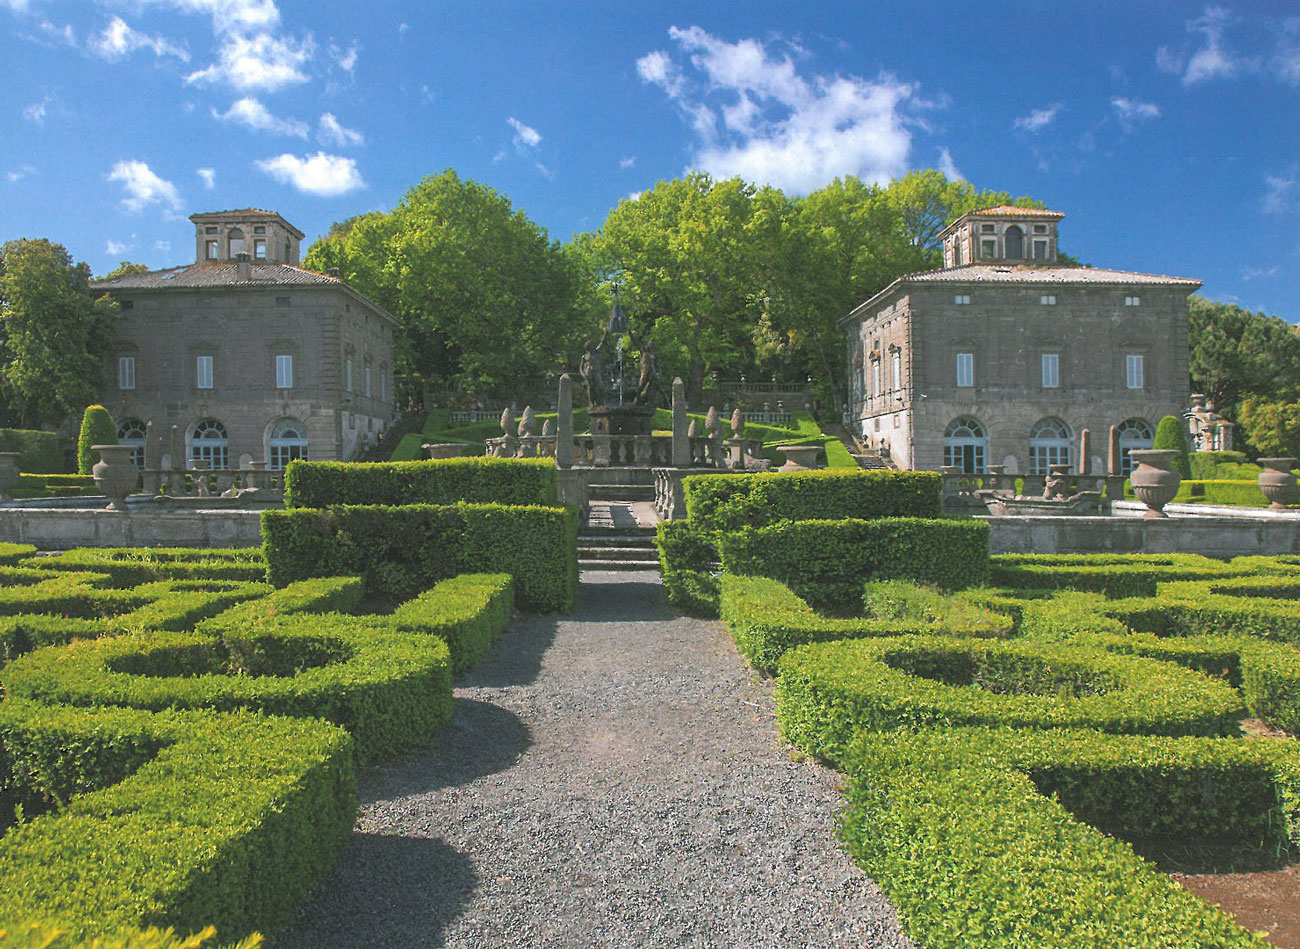 Sunny-day view of the Central Fountain in the Fountain of the Moors Garden, with the Palazzina Montalto, and the Palazzina Gambara in the background. Image courtesy of Il Pegaso Bookshop, in Bagnaia.